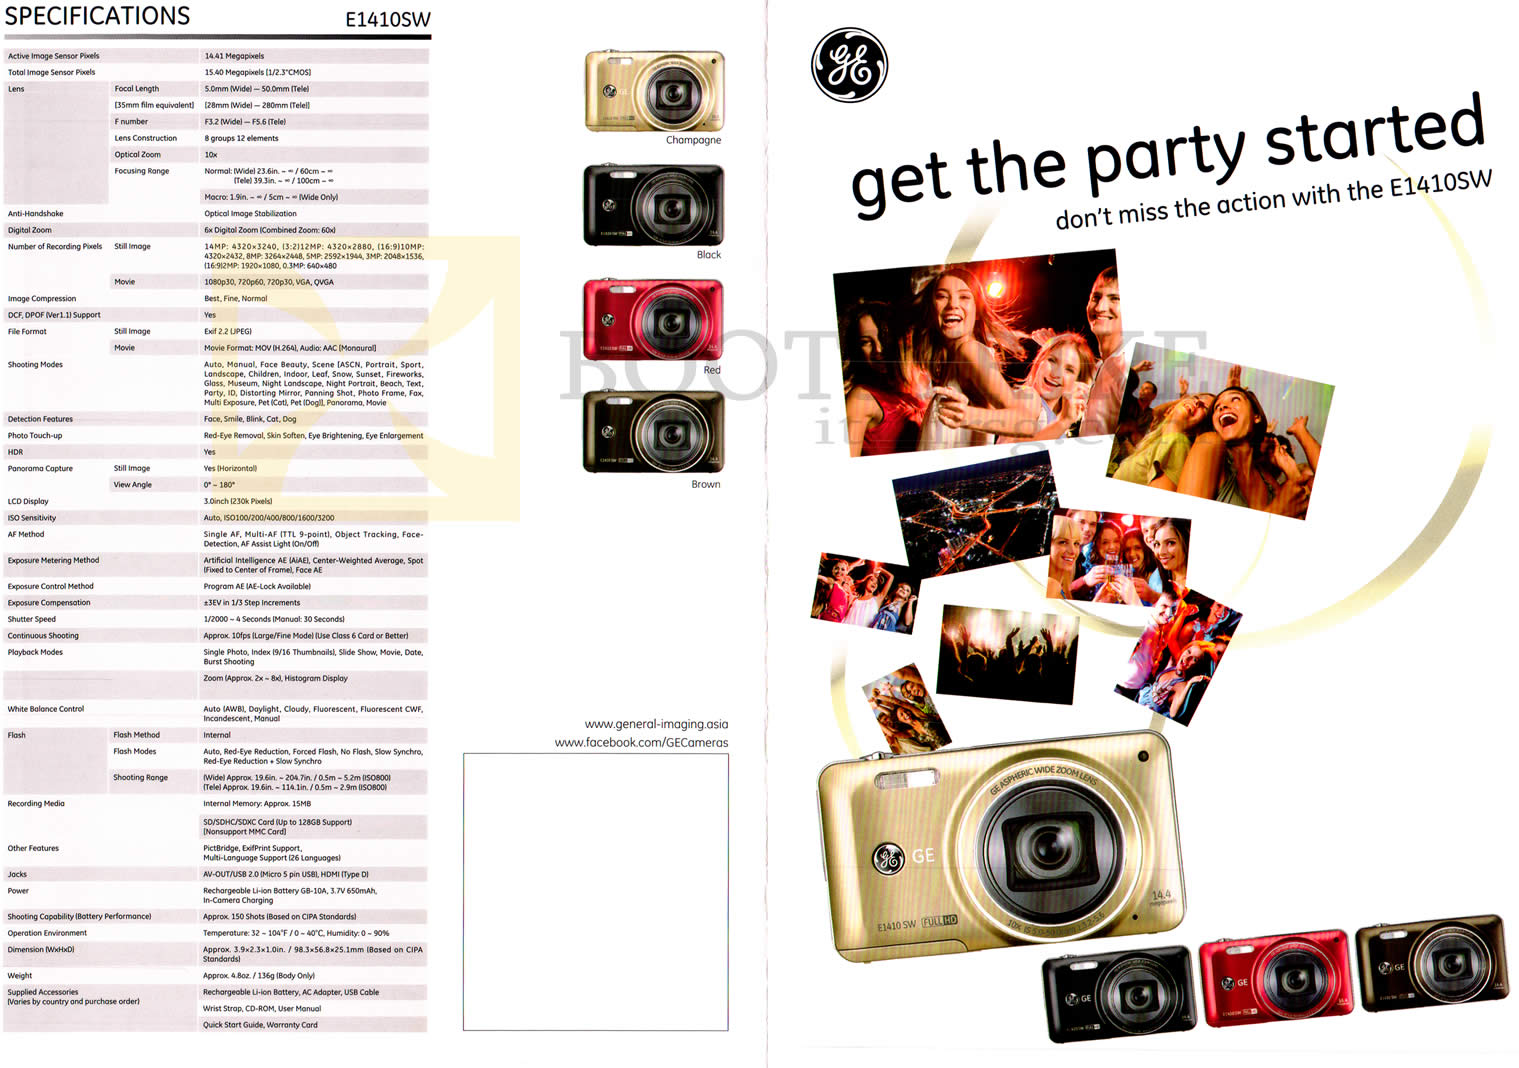 SITEX 2012 price list image brochure of C20 General Electric E1410SW Digital Camera Specifications